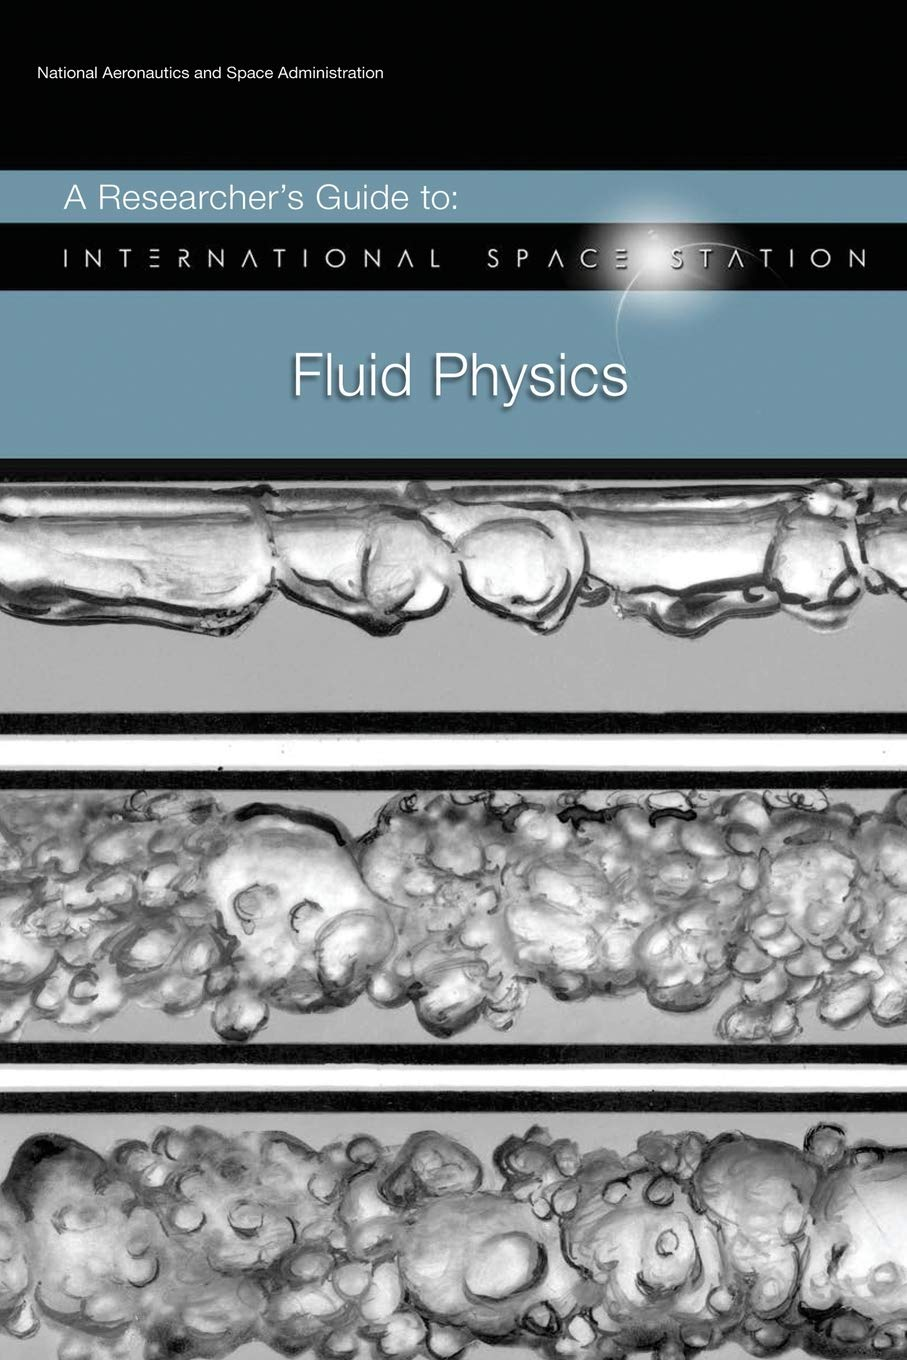 A Researcher's Guide to: International Space Station - Fluid Physics